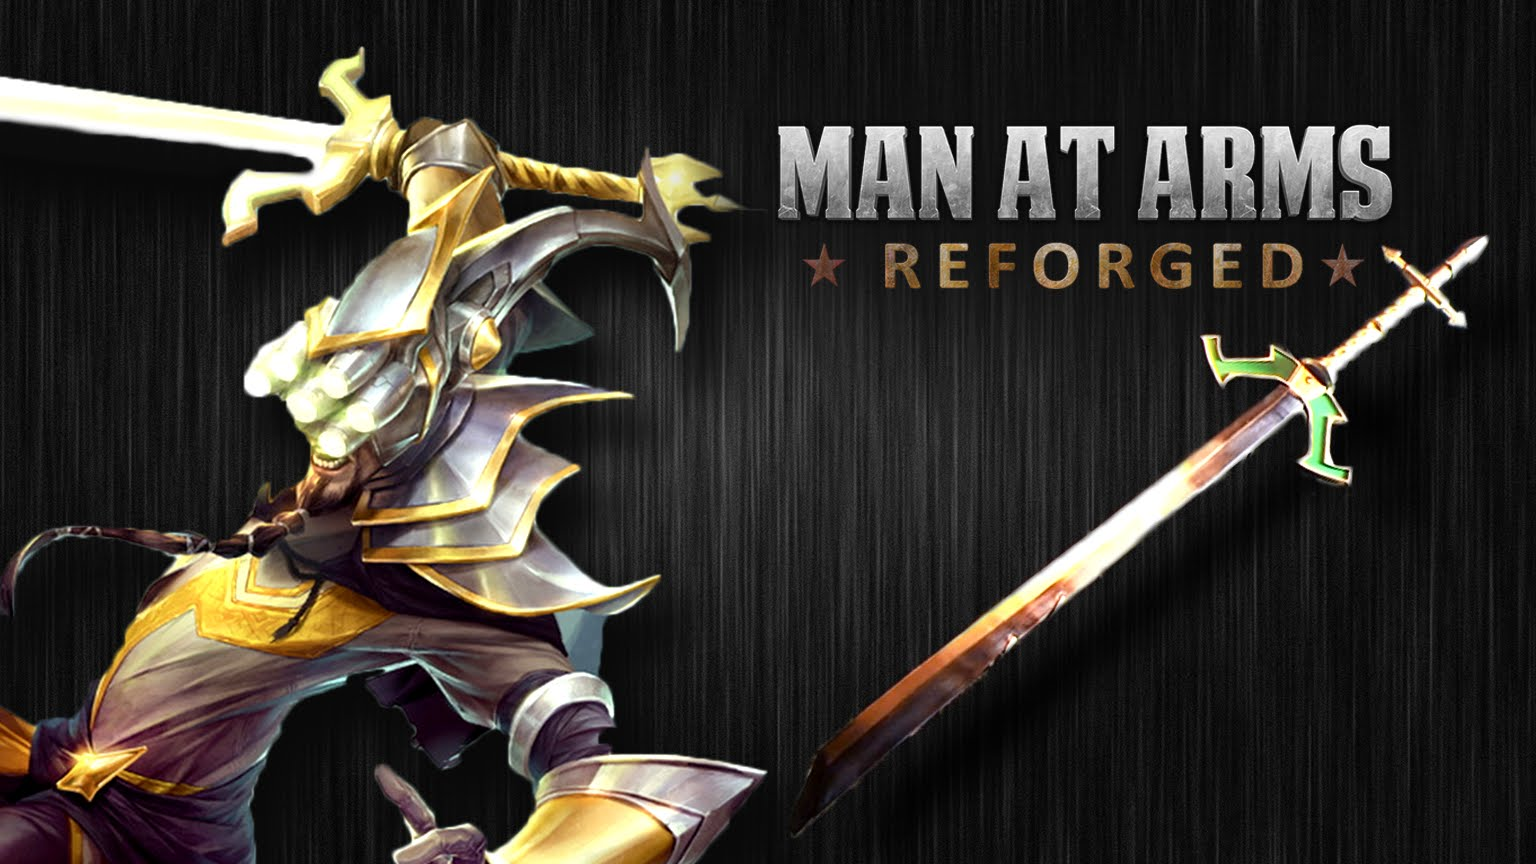 Master Yi Sword League of Legends | Man At Arms: Reforged